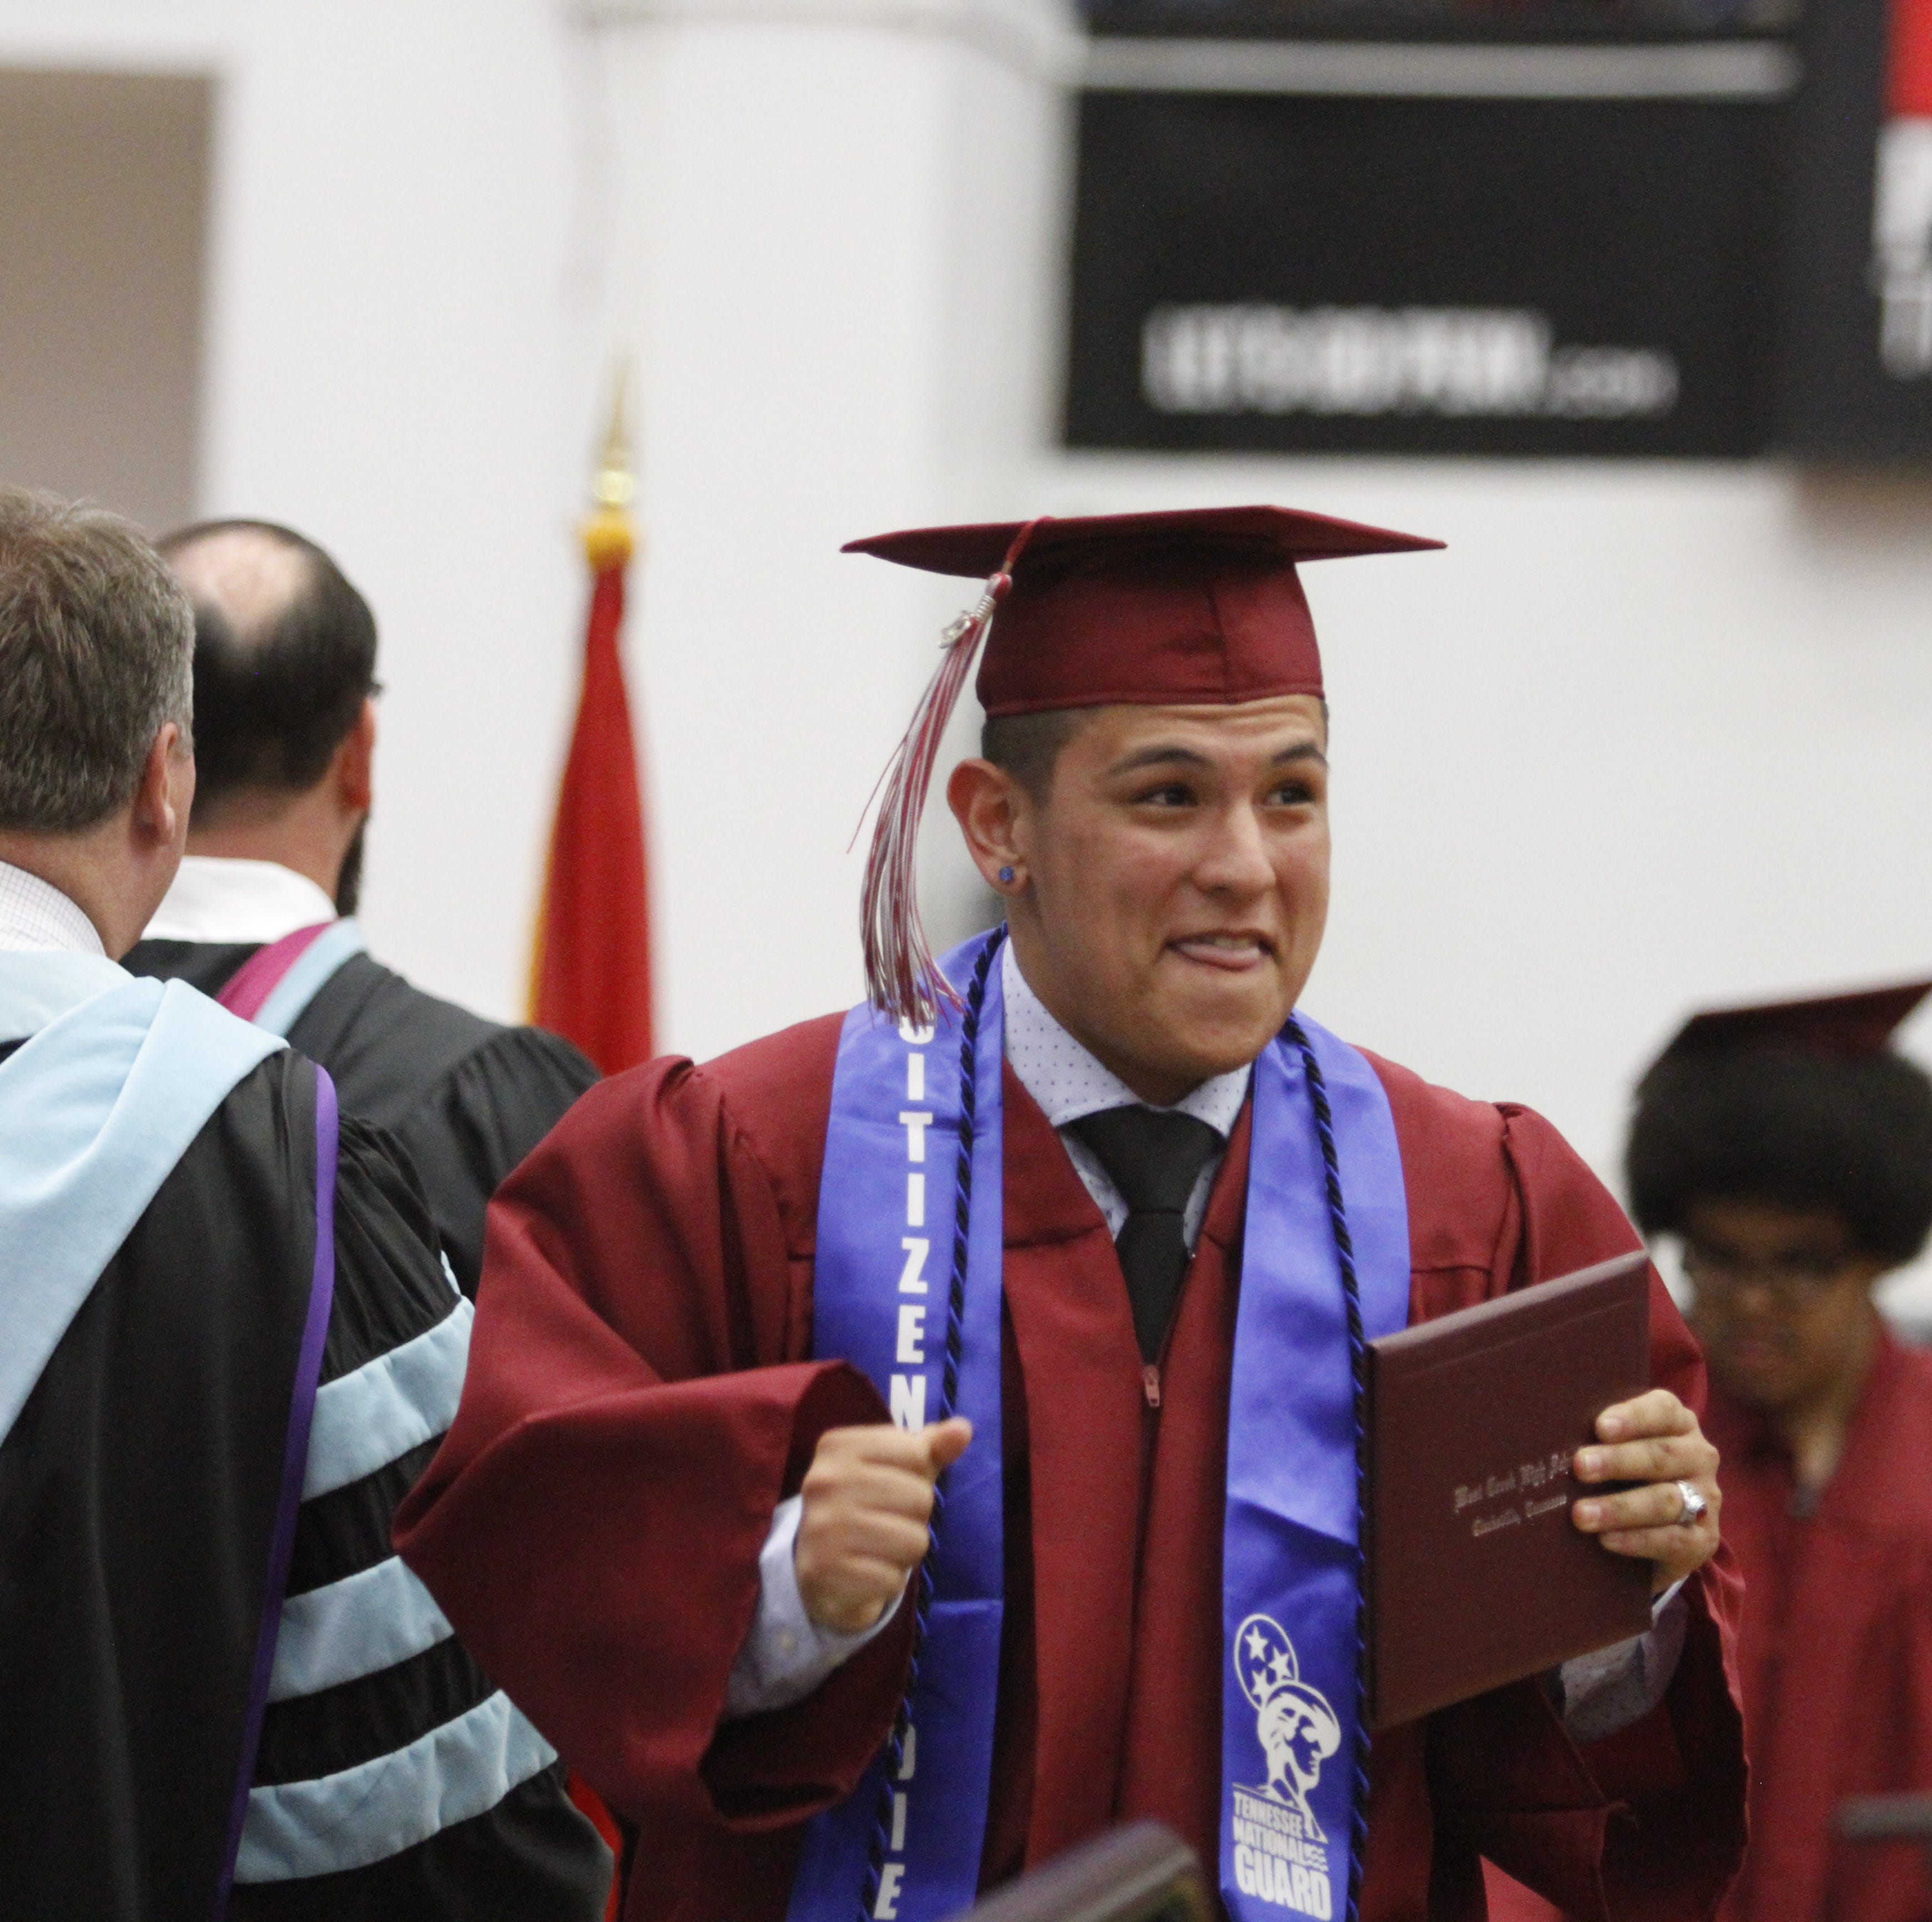 West Creek High School sends off Class of 2019